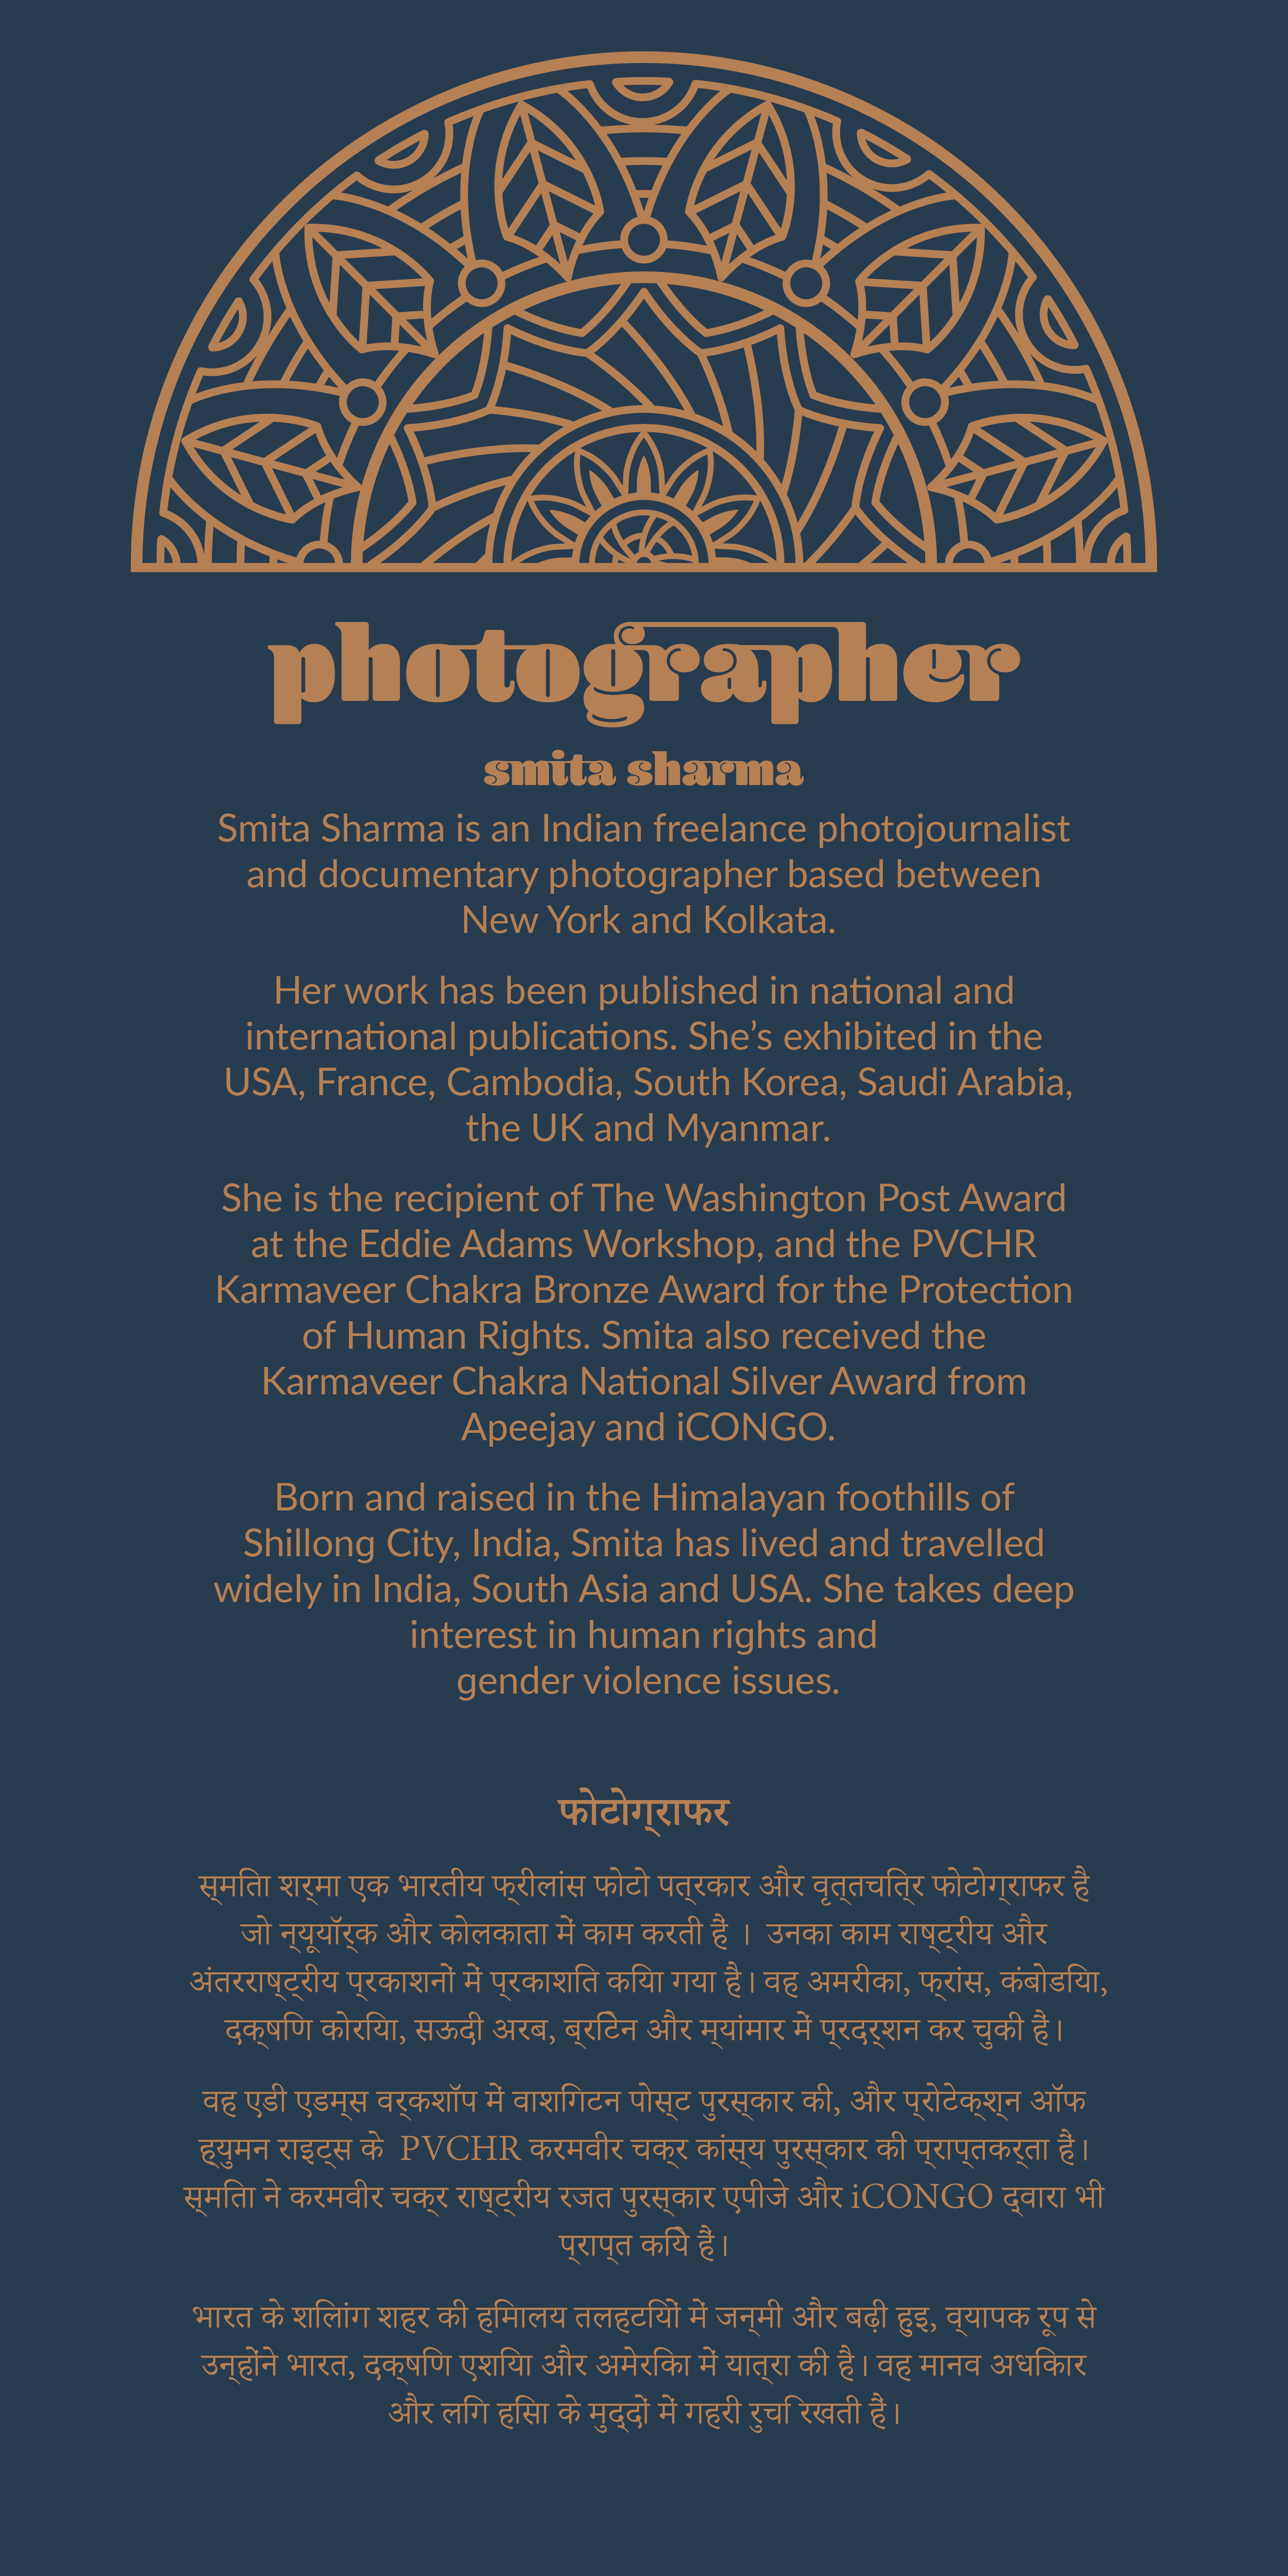 A2_UE_Intro-EngHind_PHOTOGRAPHER BIO.png